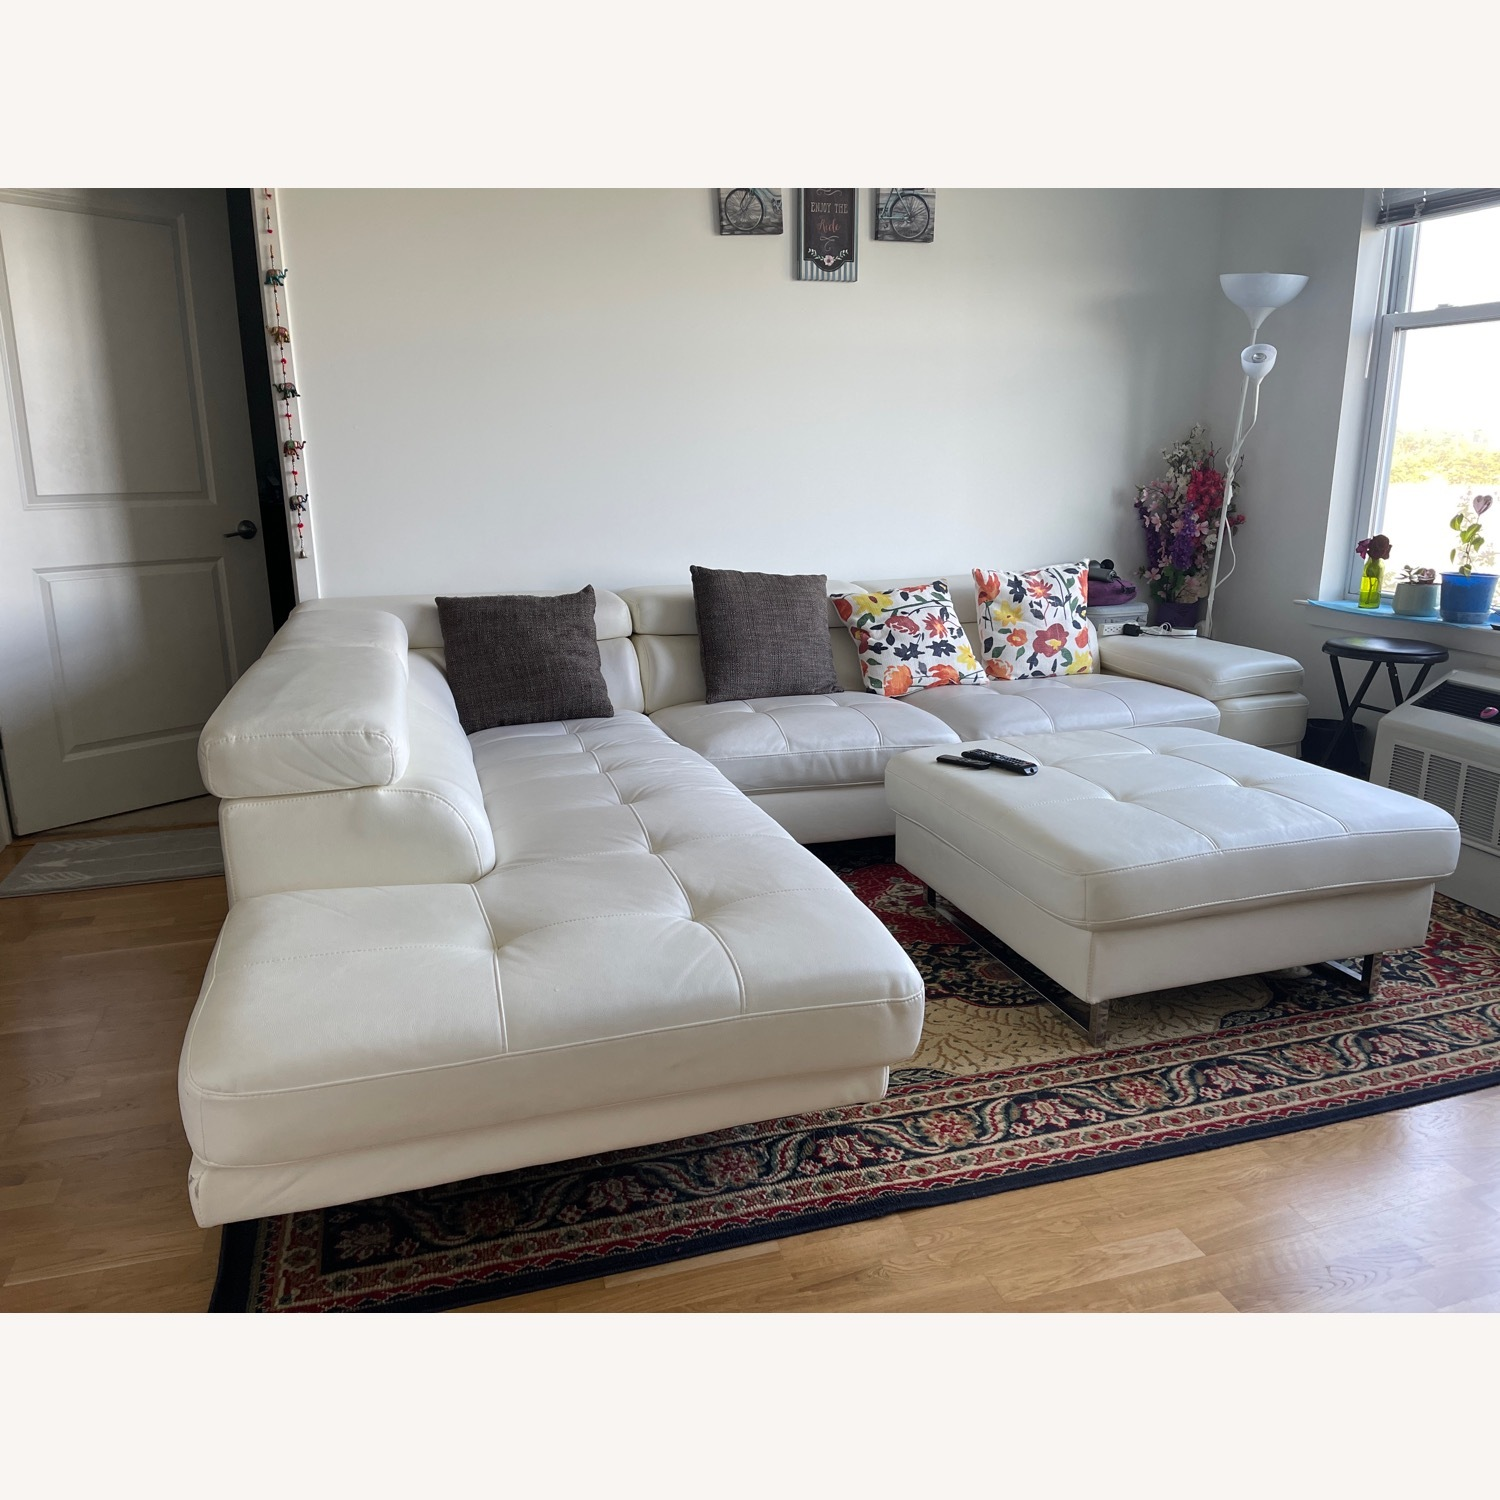 Luxury Couch and Ottoman - image-1